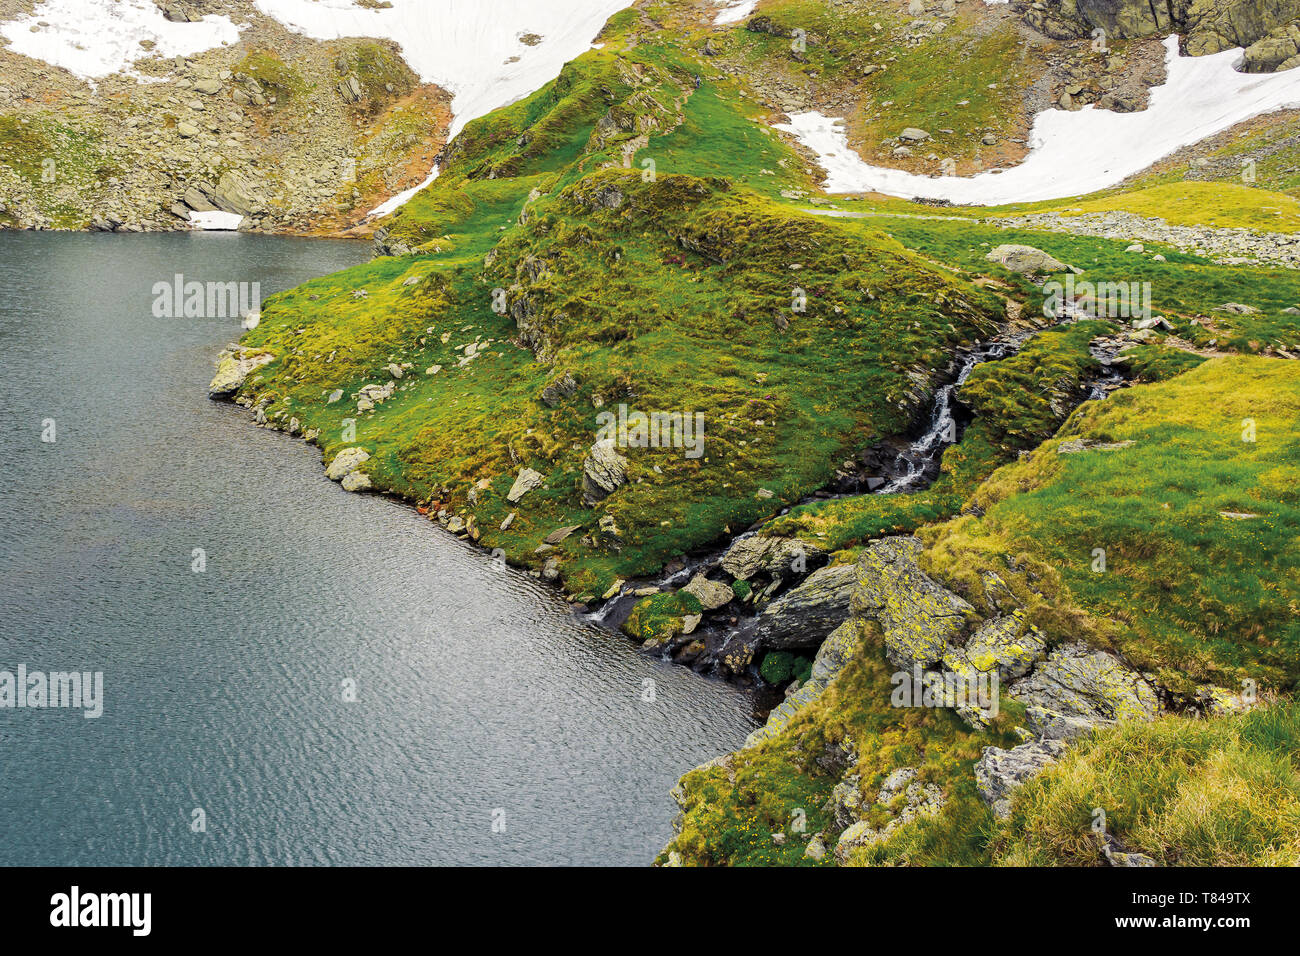 glacier mountain lake in summer. beautiful nature scenery. wonderful background with water, grass, and rocks - Stock Image